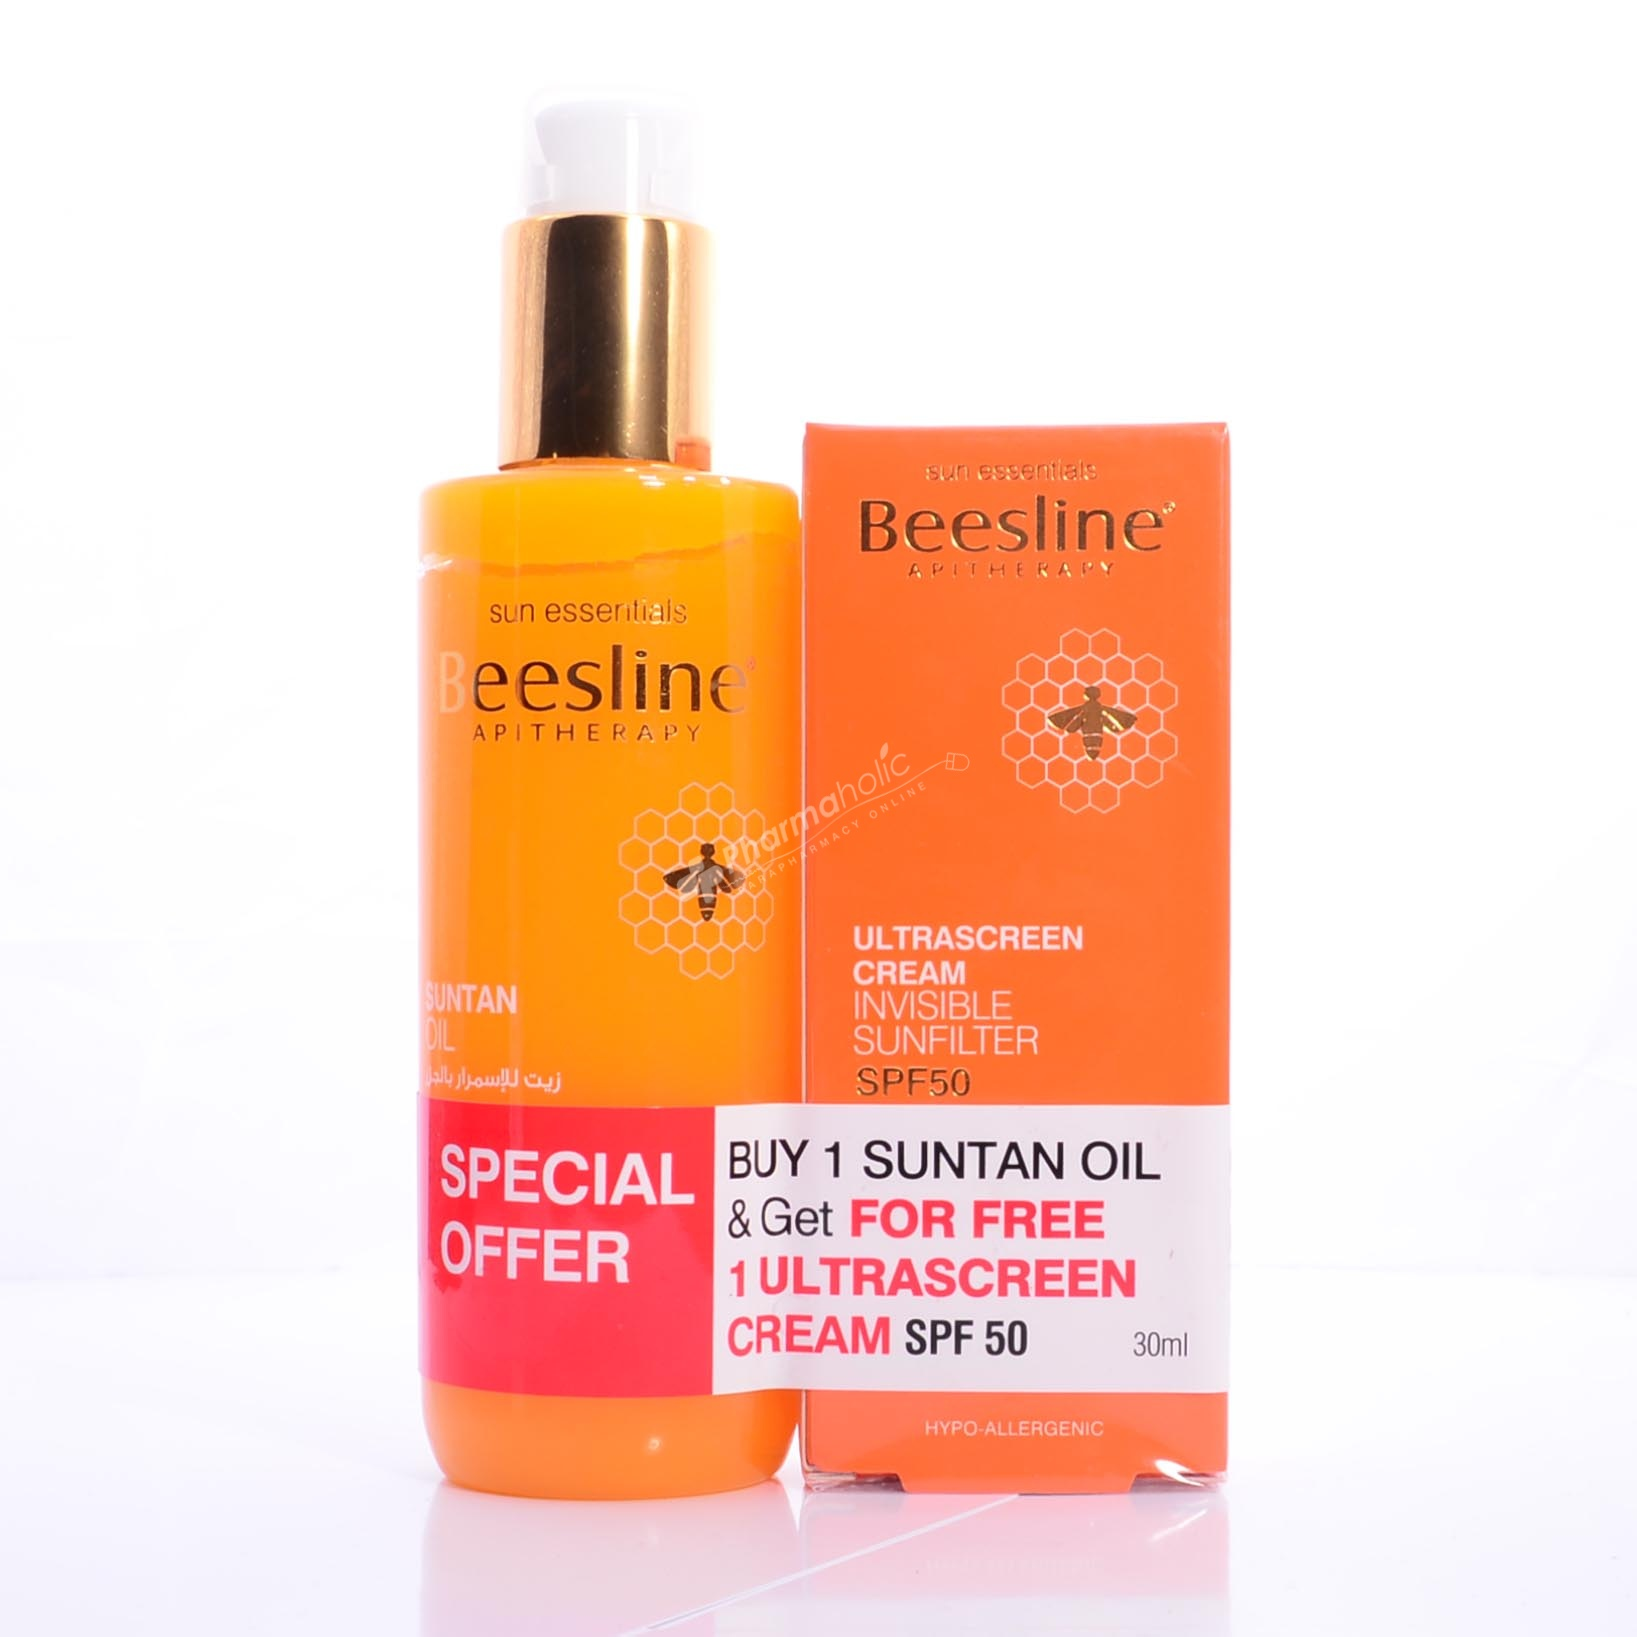 Beesline Suntan Oil 200ml Ultrascreen Cream Spf50